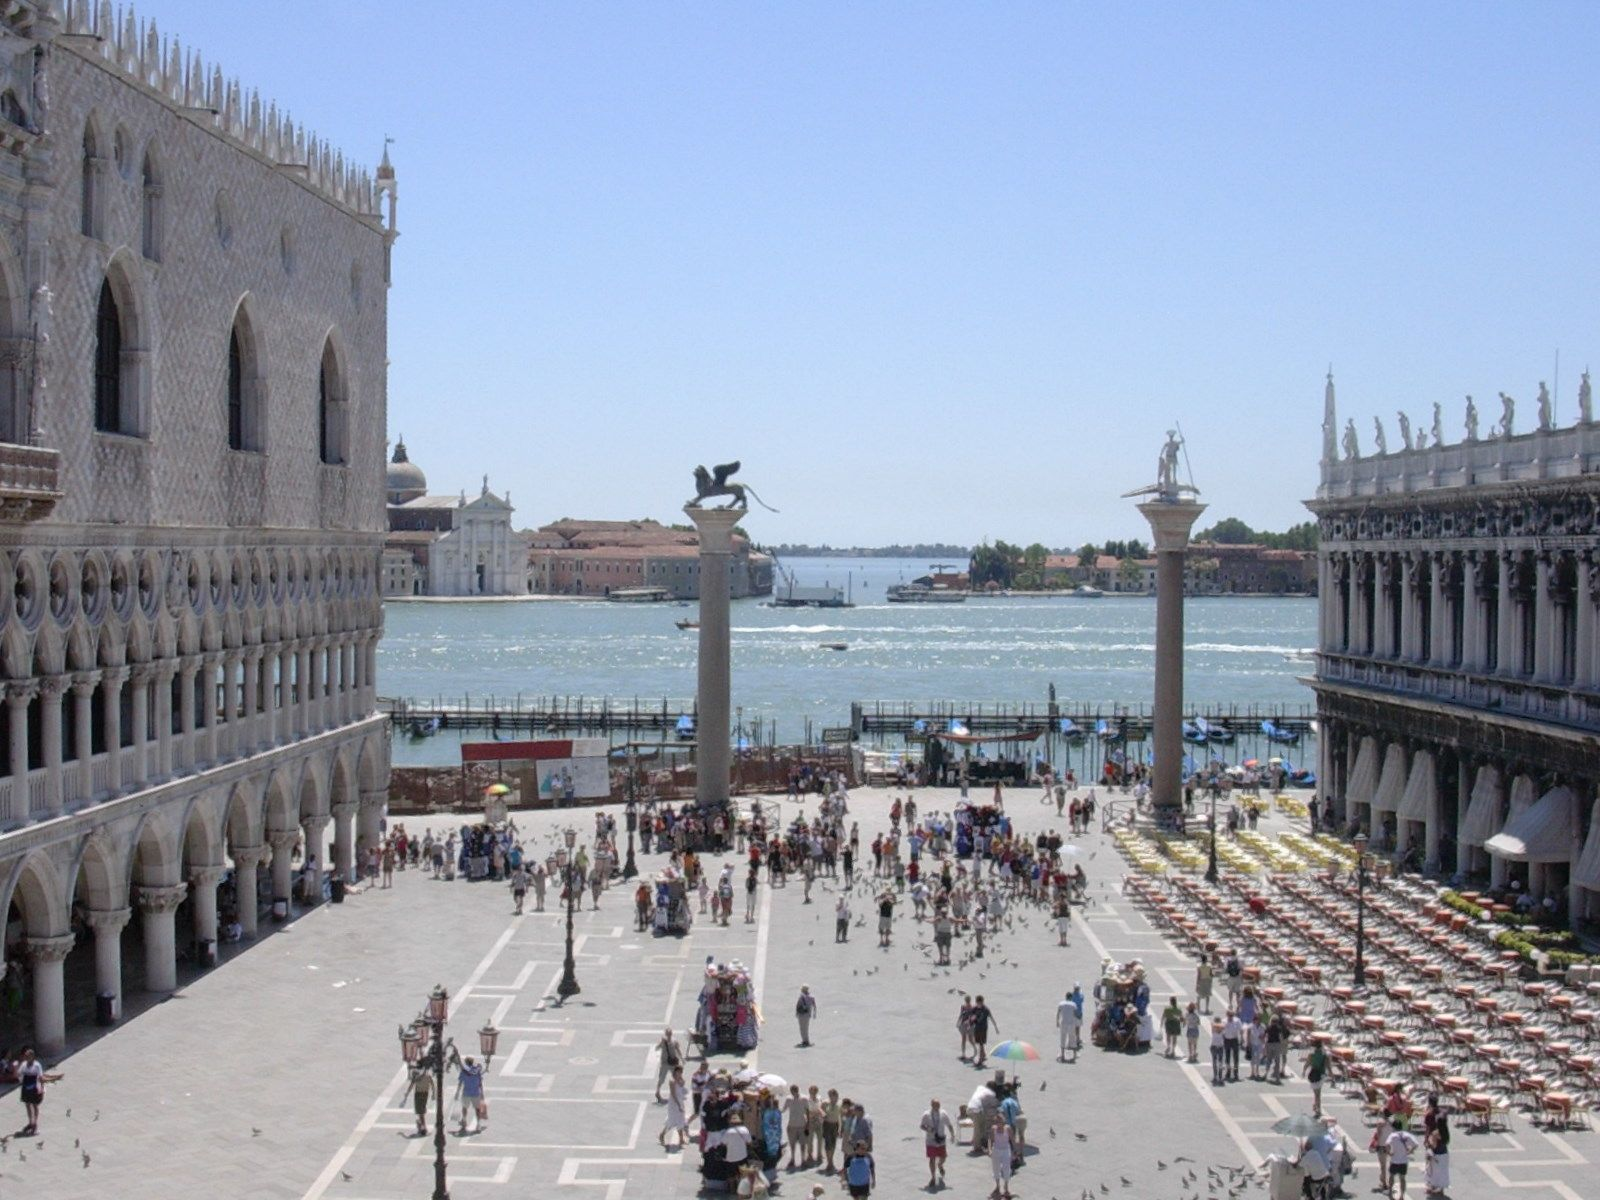 Piazzetta di San Marco looking down to 2 granite columns on the Molo waterfront